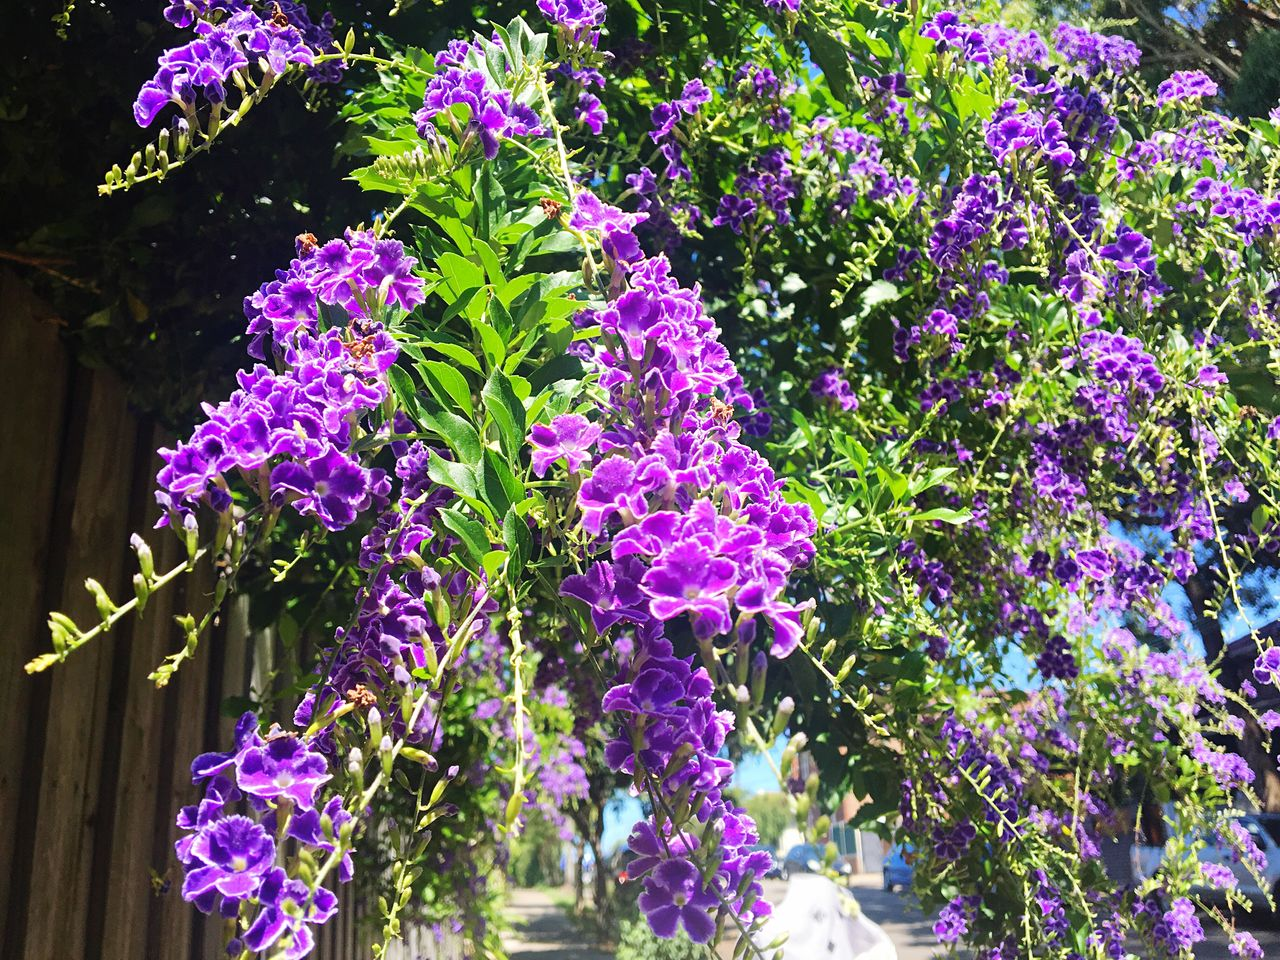 flower, growth, purple, plant, no people, fragility, nature, freshness, beauty in nature, day, outdoors, lilac, blooming